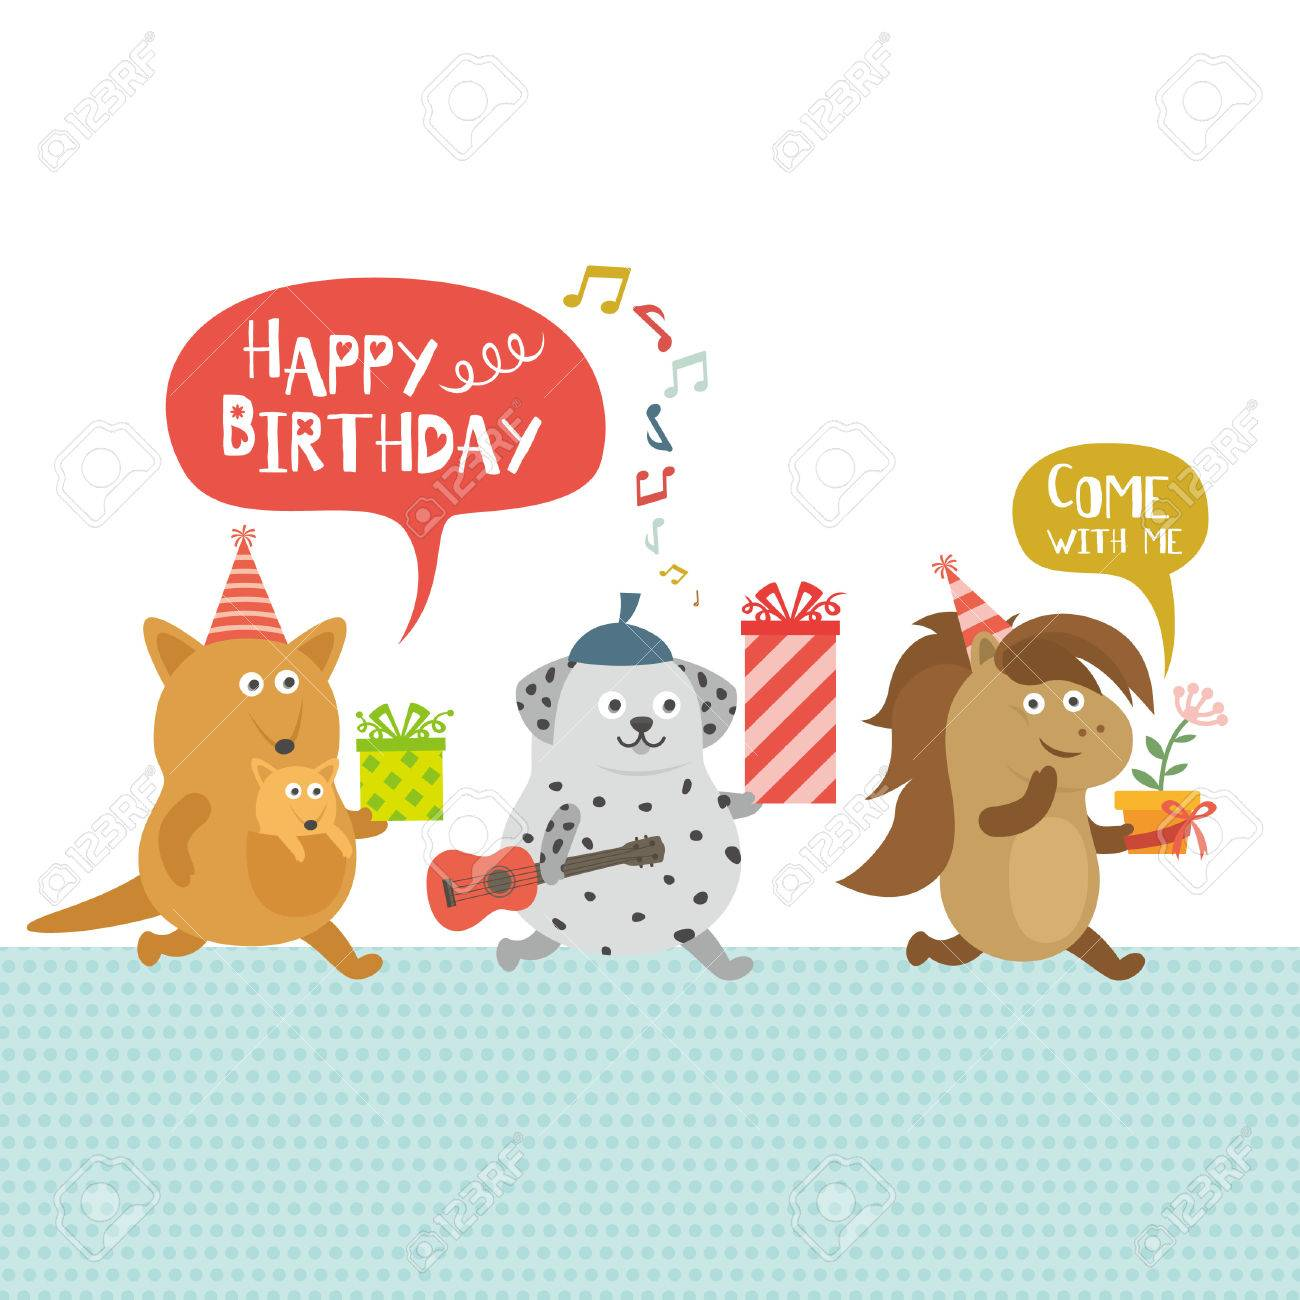 Birthday Party Kangaroo And Dog And Horse Royalty Free Cliparts Vectors And Stock Illustration Image 41960171